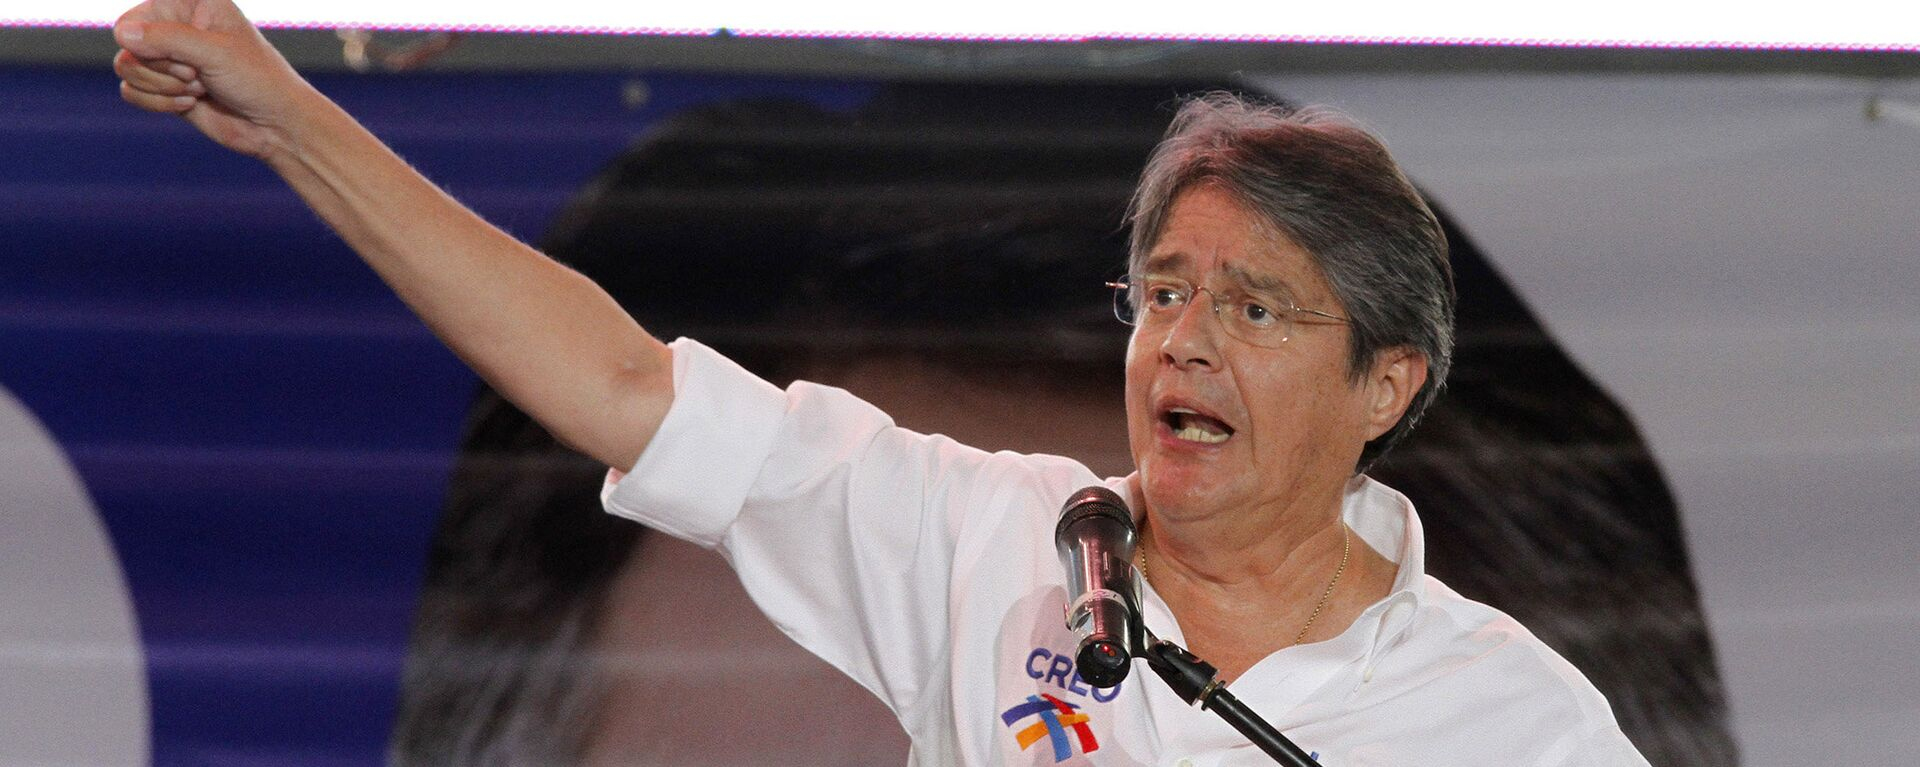 Opposition presidential candidate of the Movement Creando Oportunidades, CREO, party, Guillermo Lasso, delivers a speech during his closing campaign rally in Guayaquil, Ecuador, Thursday, Feb. 14, 2013. - Sputnik Mundo, 1920, 22.06.2021